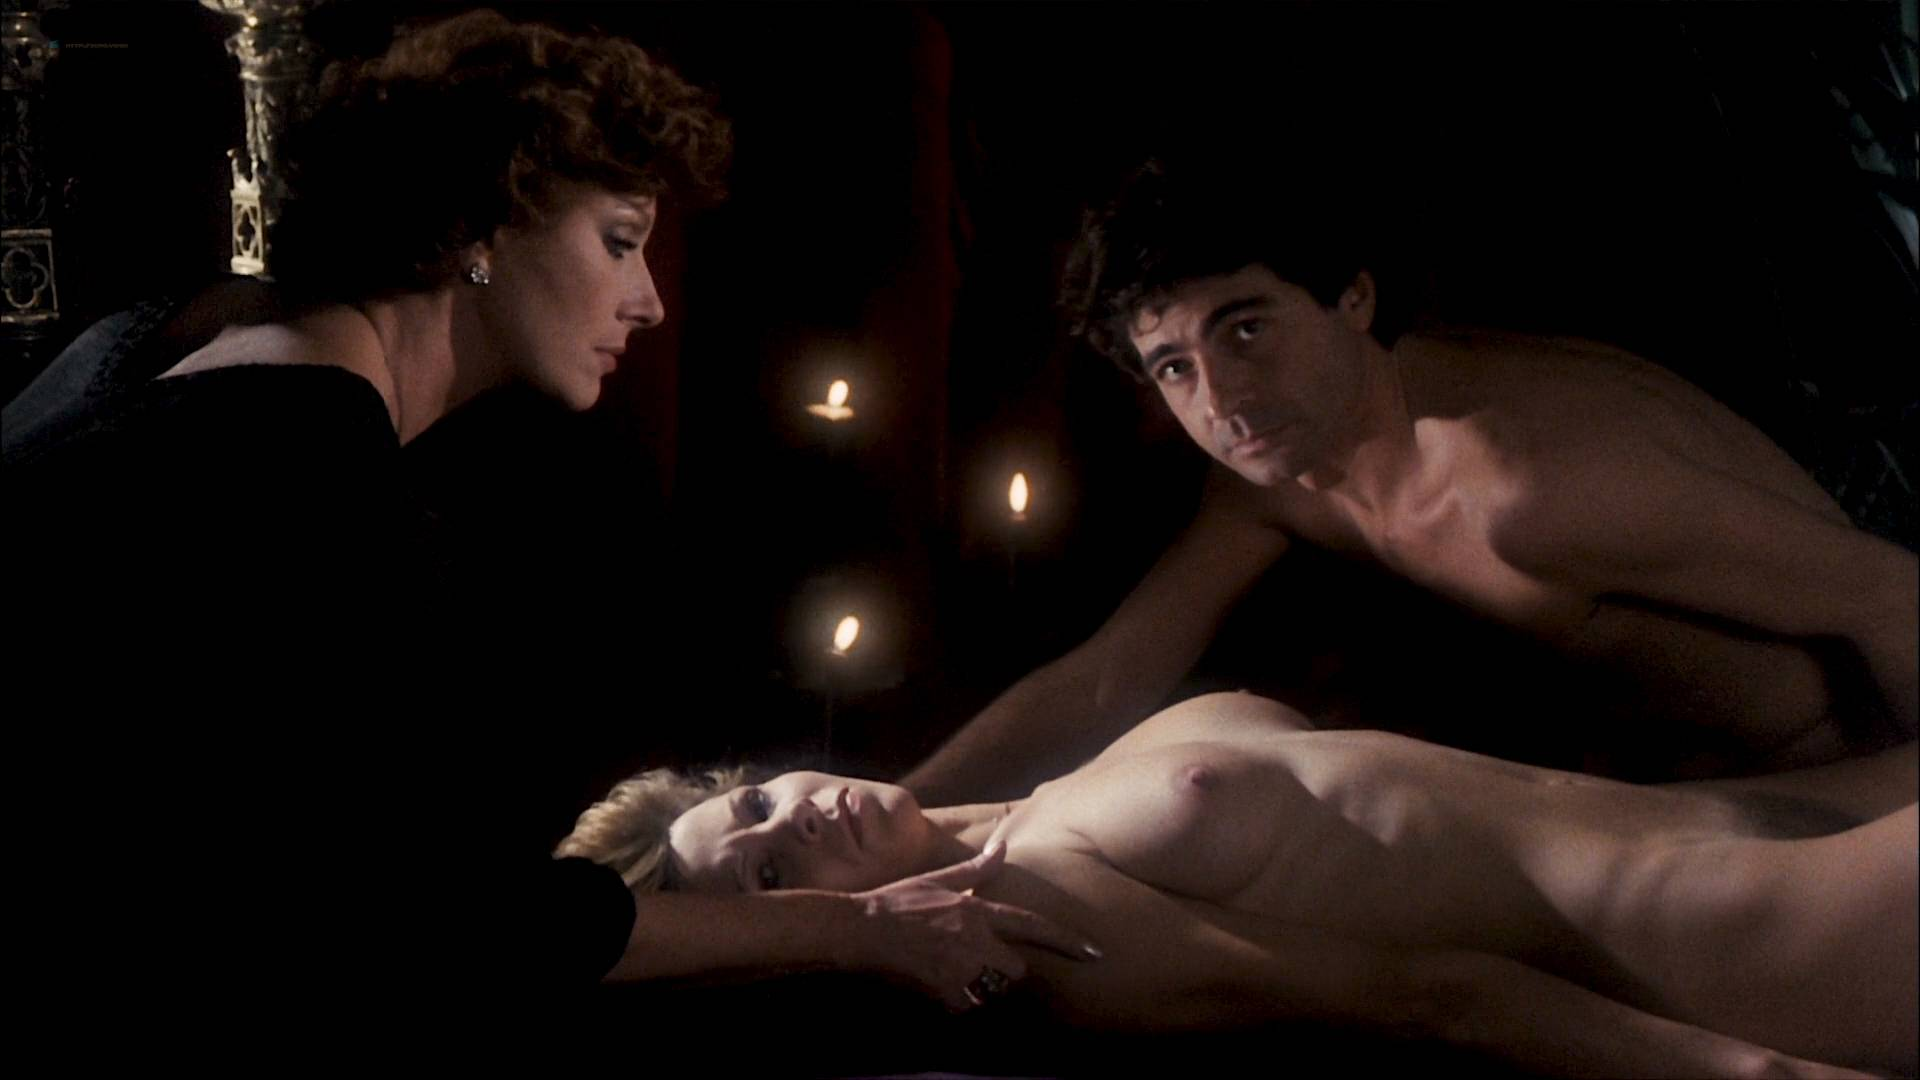 Black candles nude scenes that